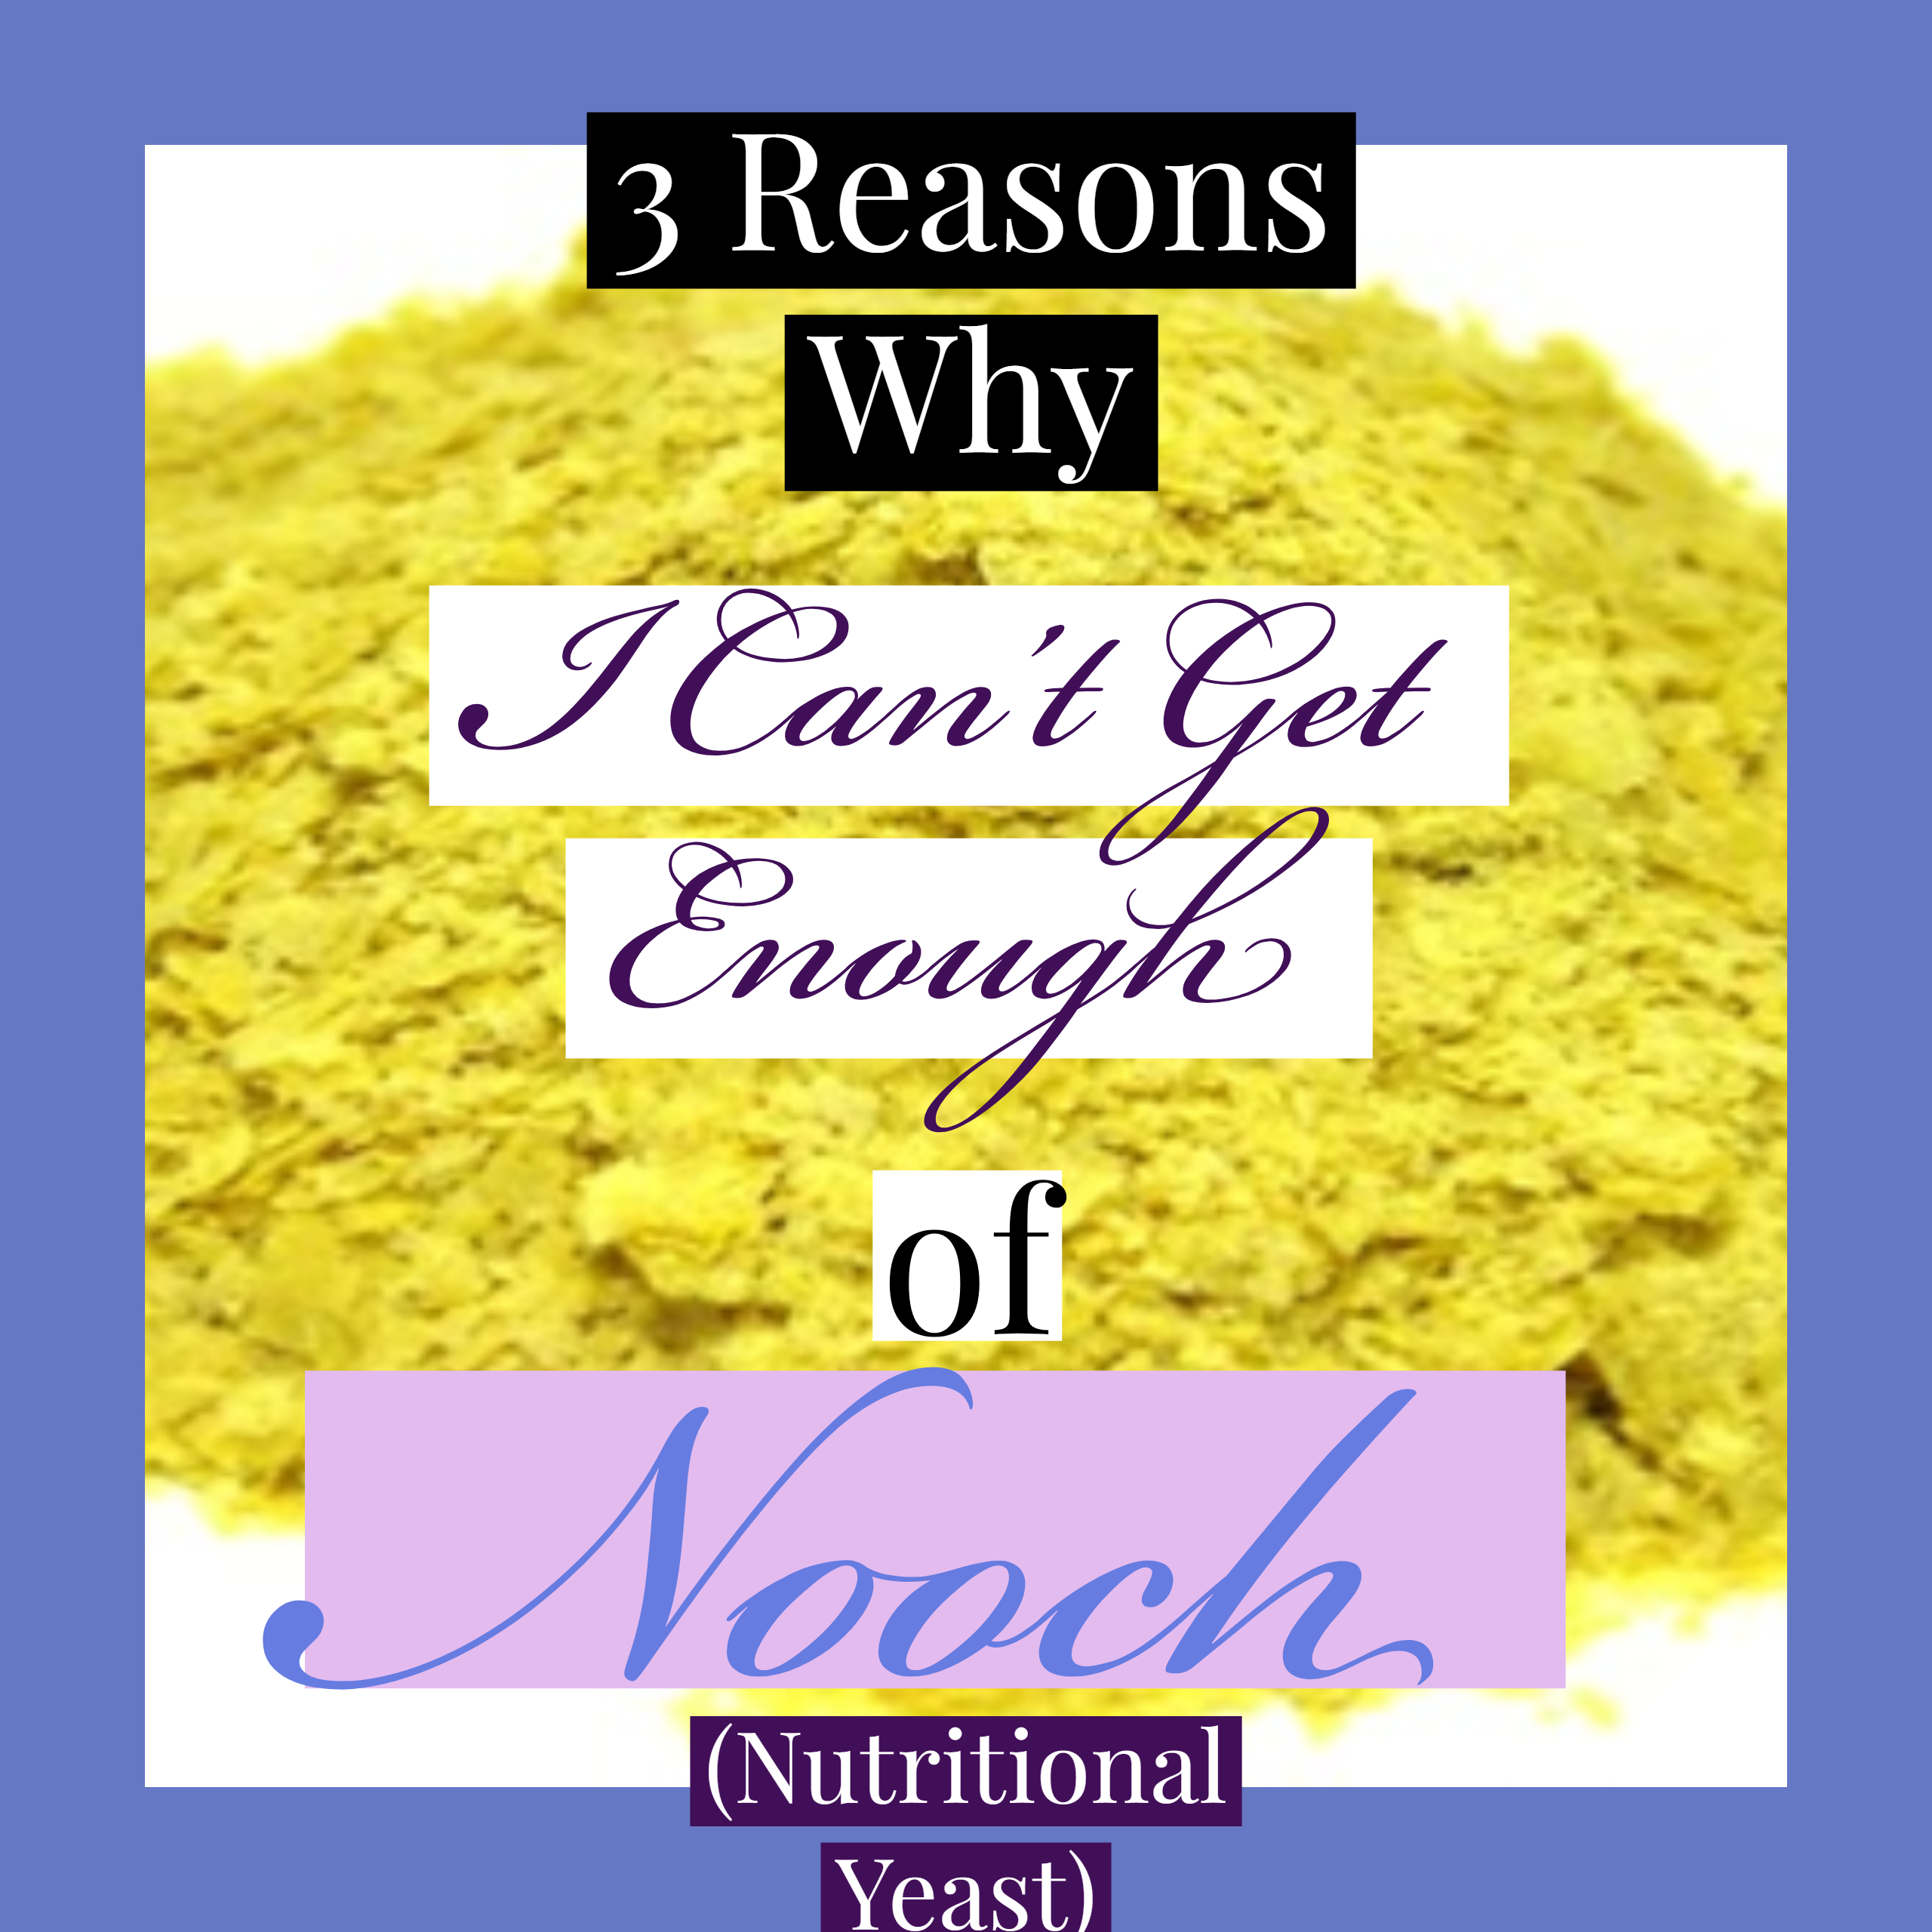 3 reasons why I can't get enough of nooch